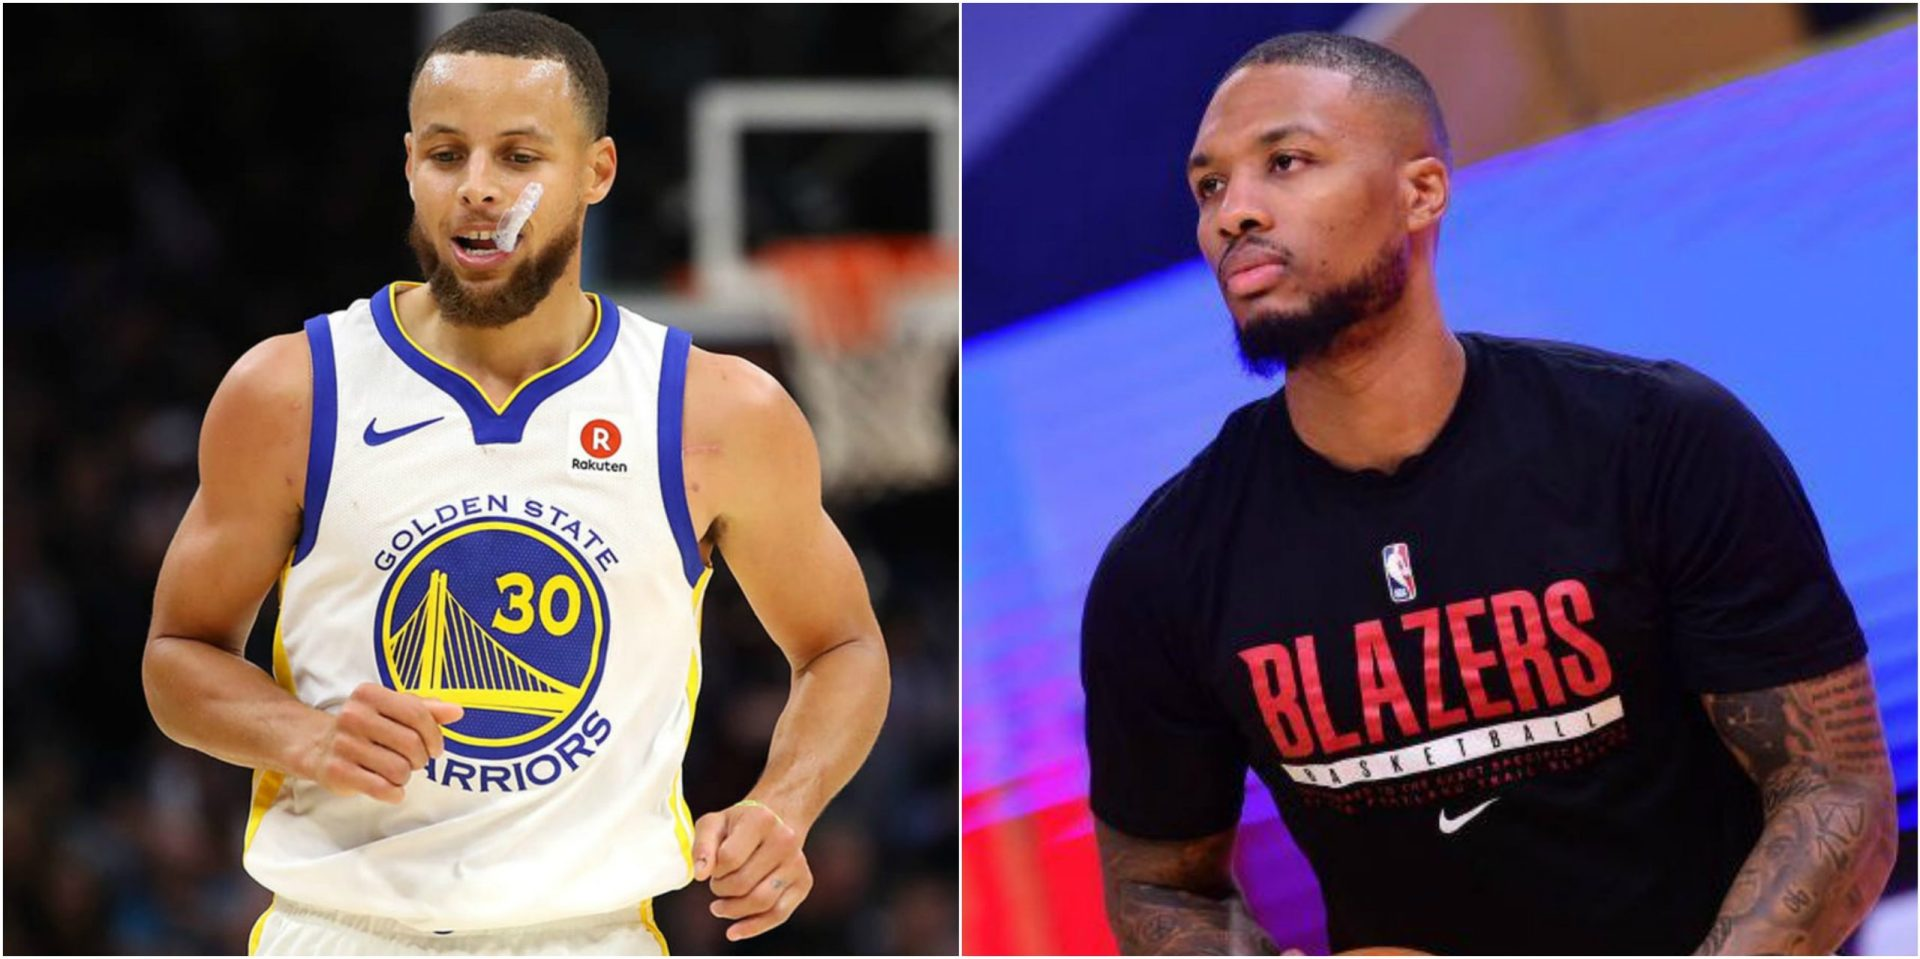 Damian Lillard says Steph Curry looks 'different' compared to last 4-5 years - THE SPORTS ROOM